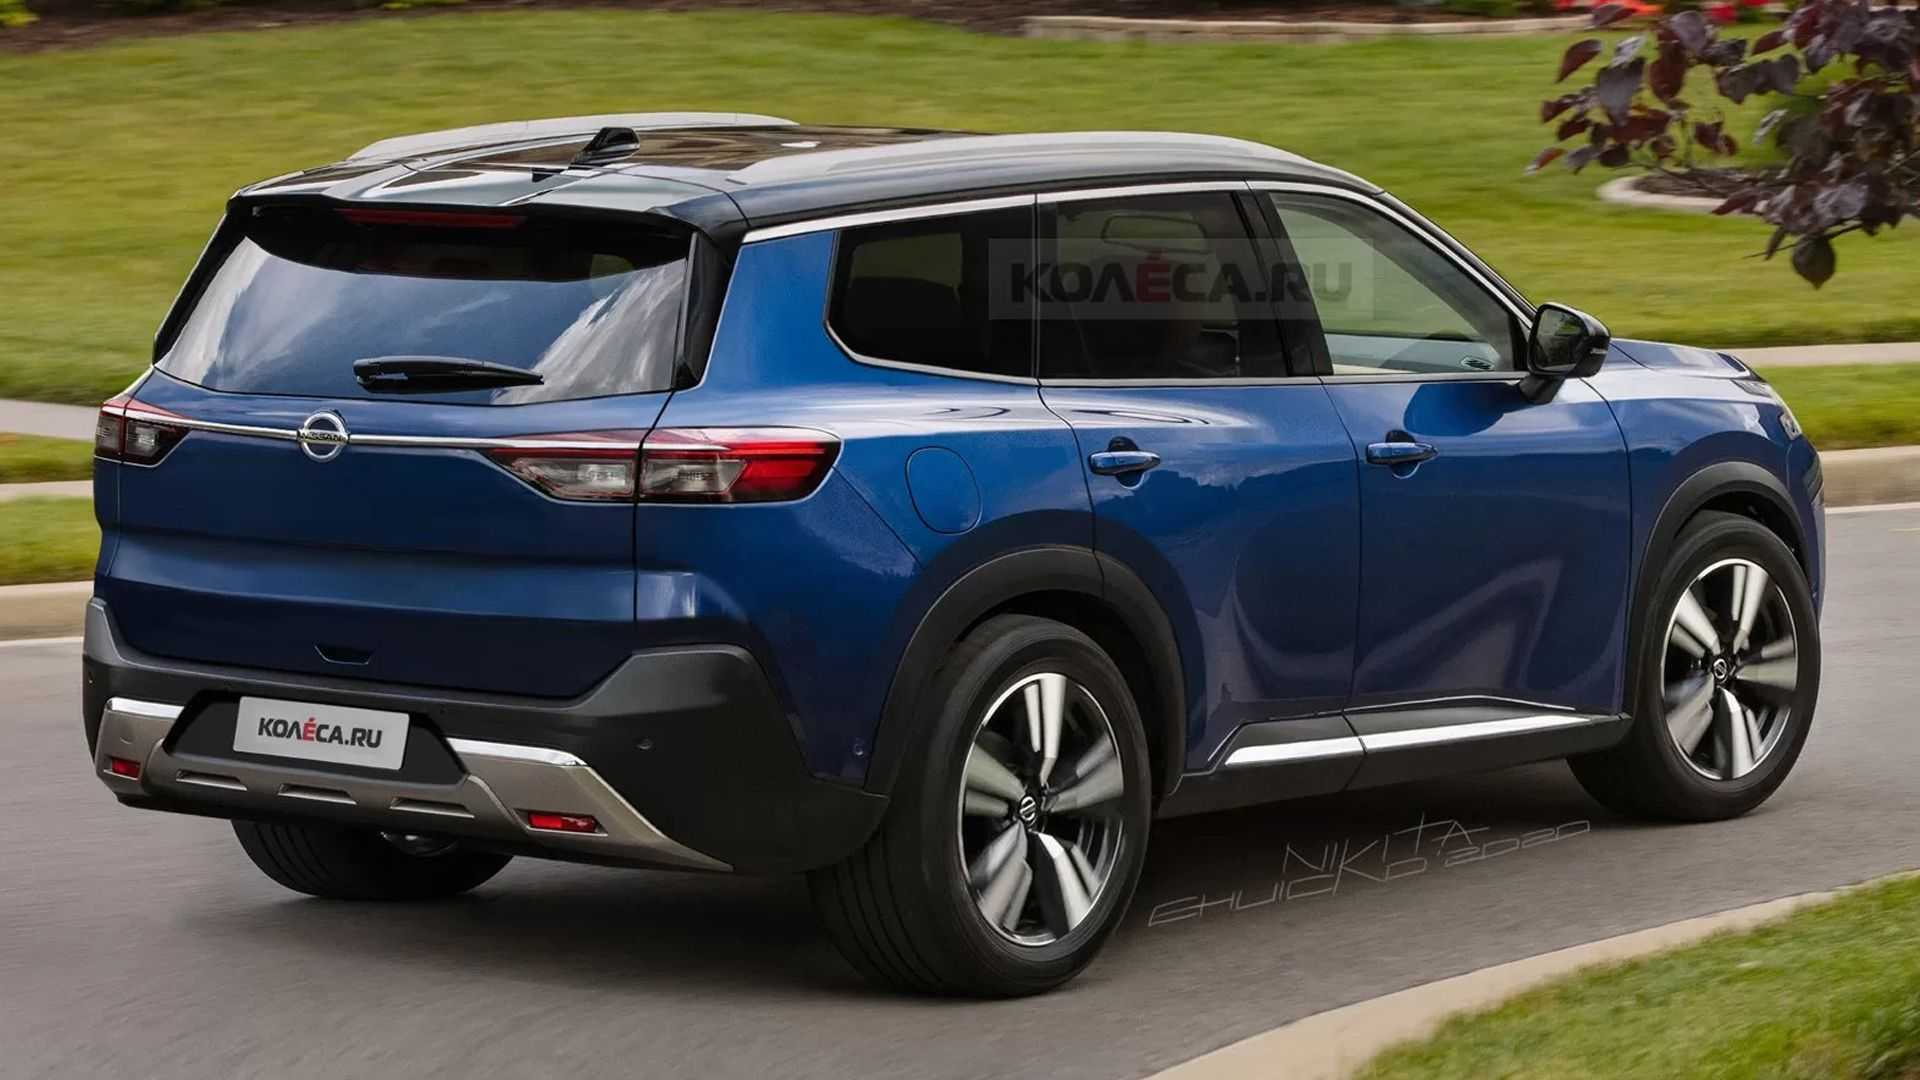 2022 nissan pathfinder is practical high-tech suv in